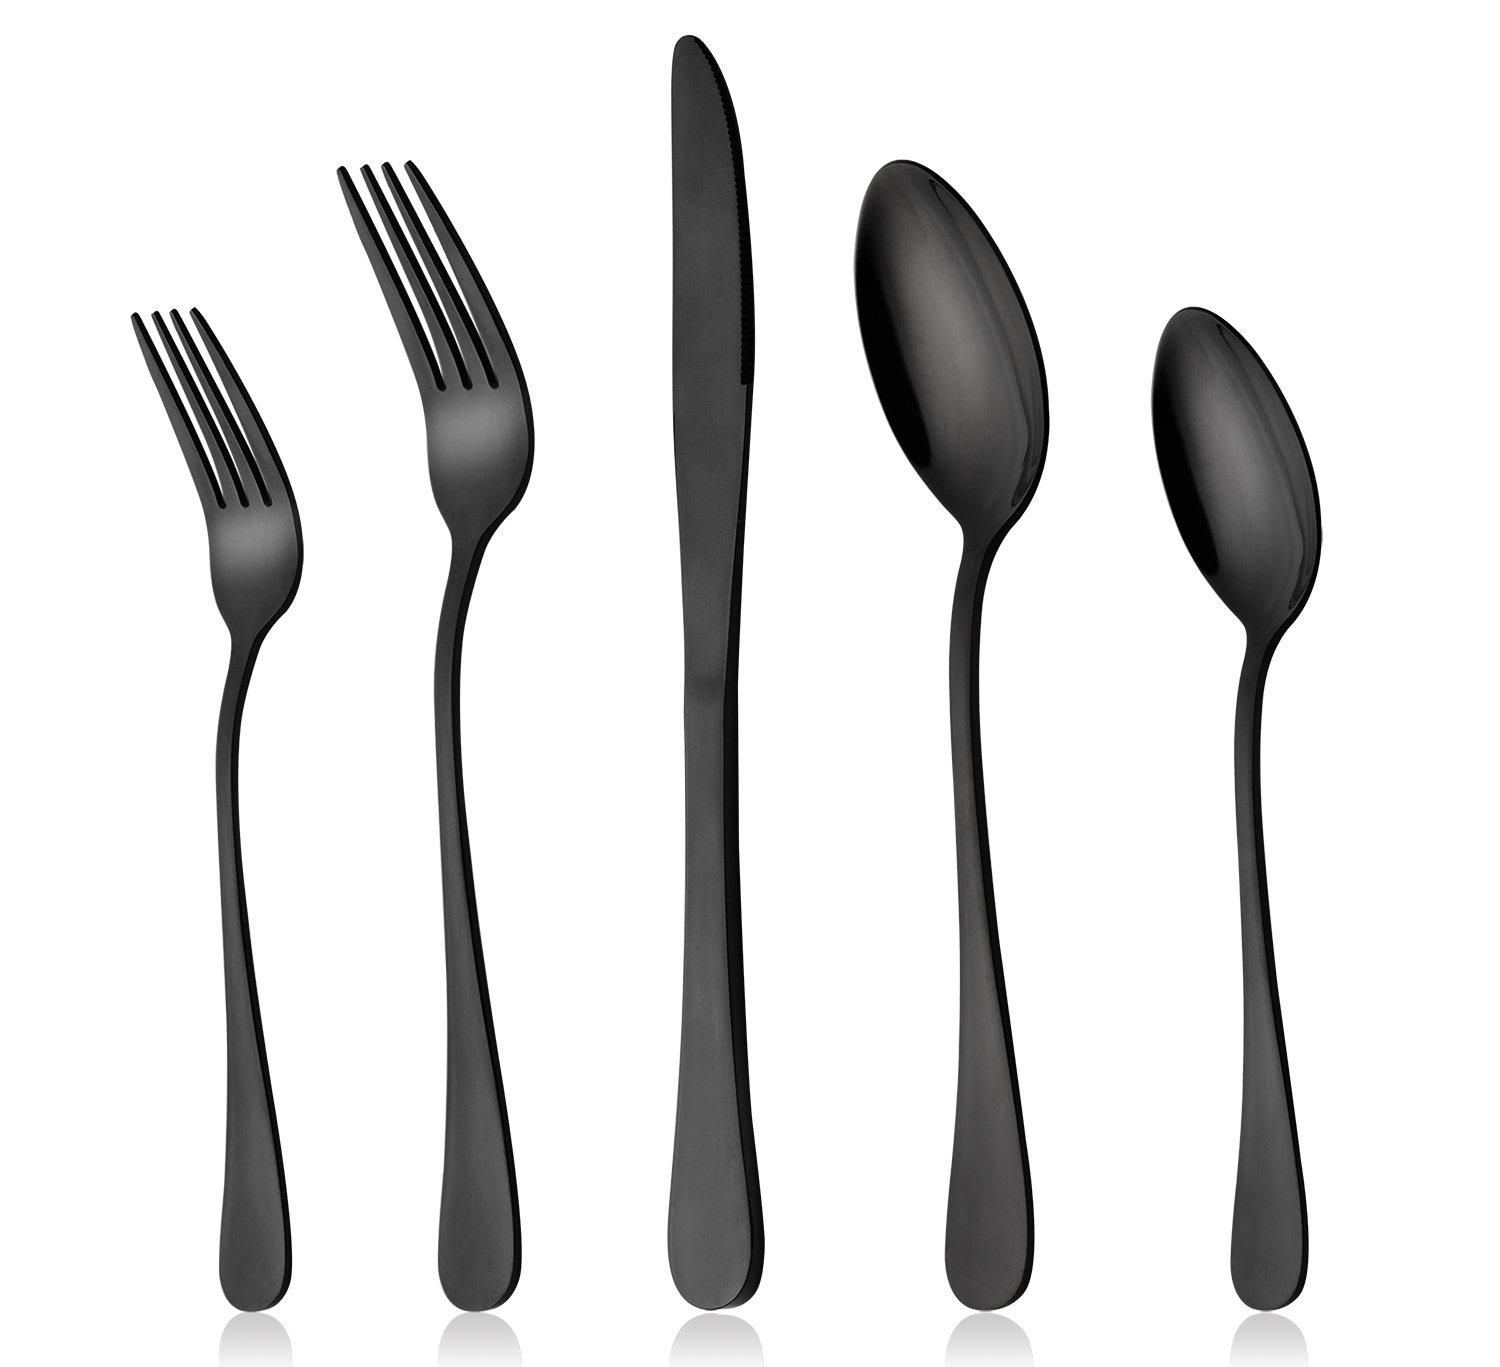 Black Silverware Set, LIANYU 20-Piece Stainless Steel Flatware Cutlery Set for 4, Mirror Finish, Dishwasher Safe, Nice Box Package